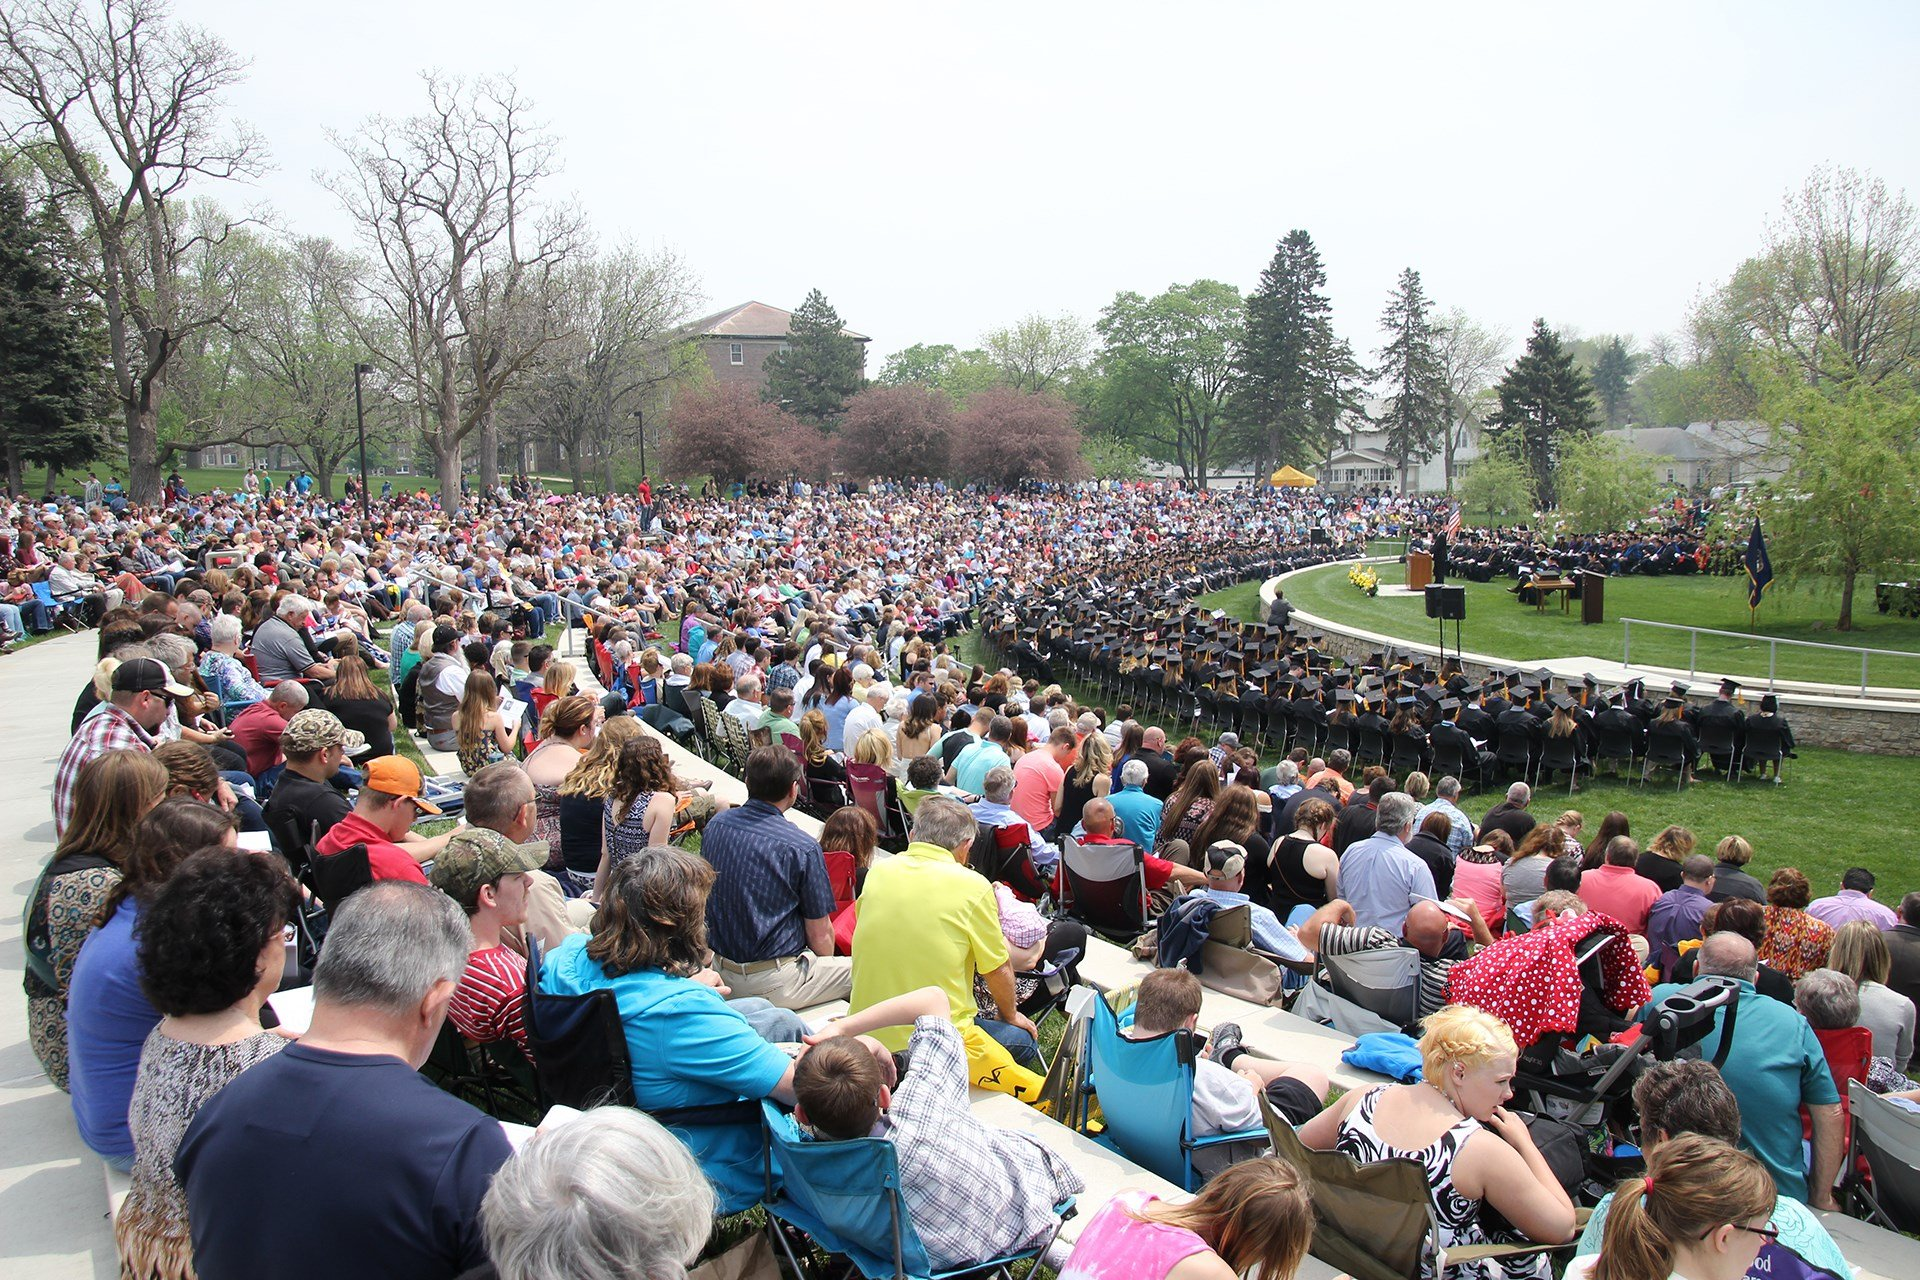 WSC to hold three graduation ceremonies to honor classes of 2020, 2021